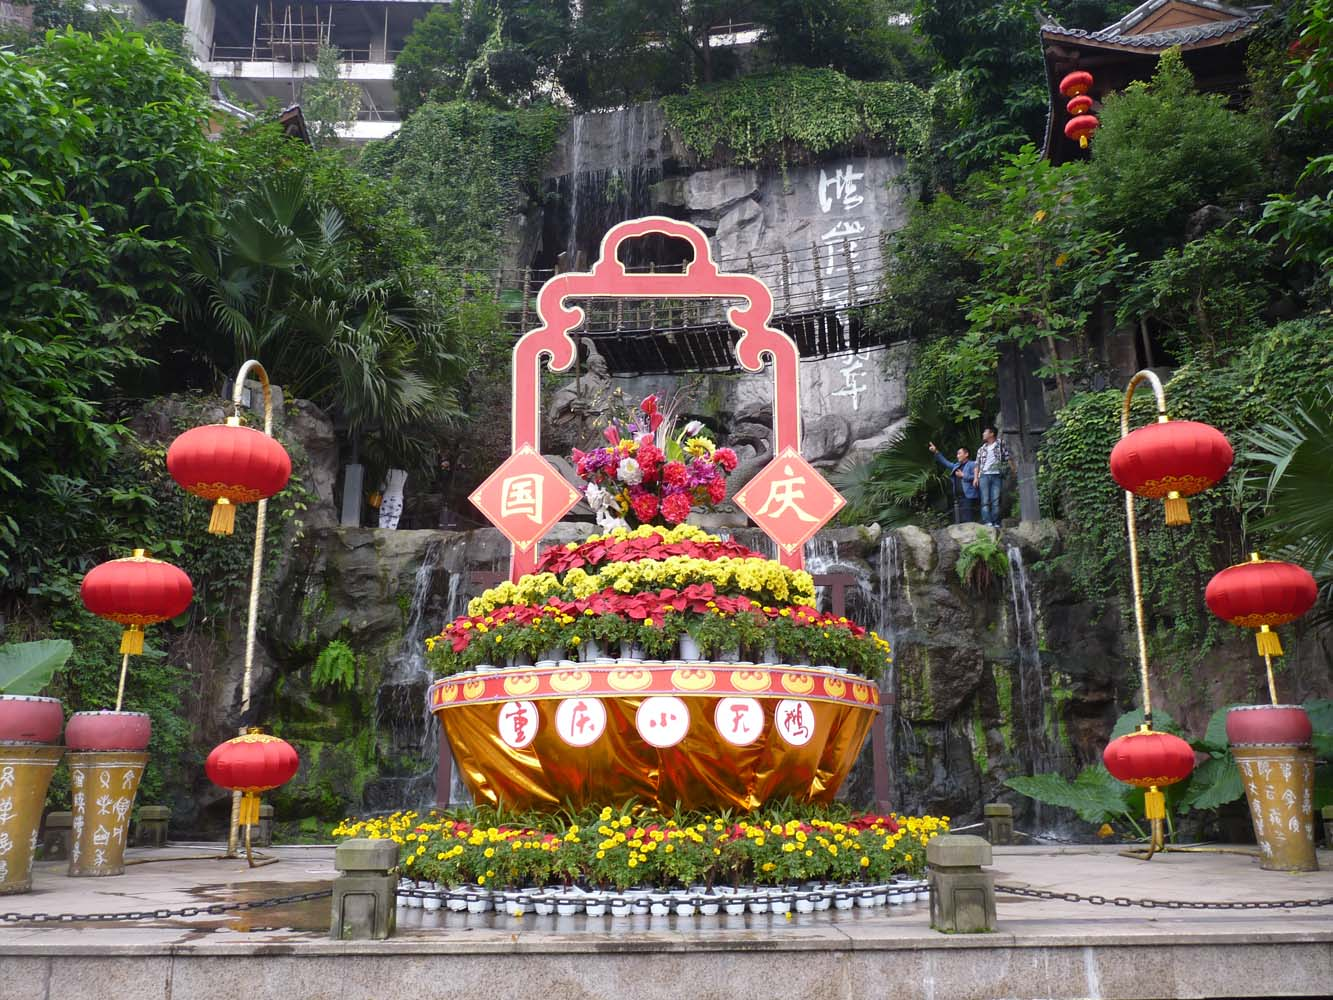 LCGR Flower Display Chongqing